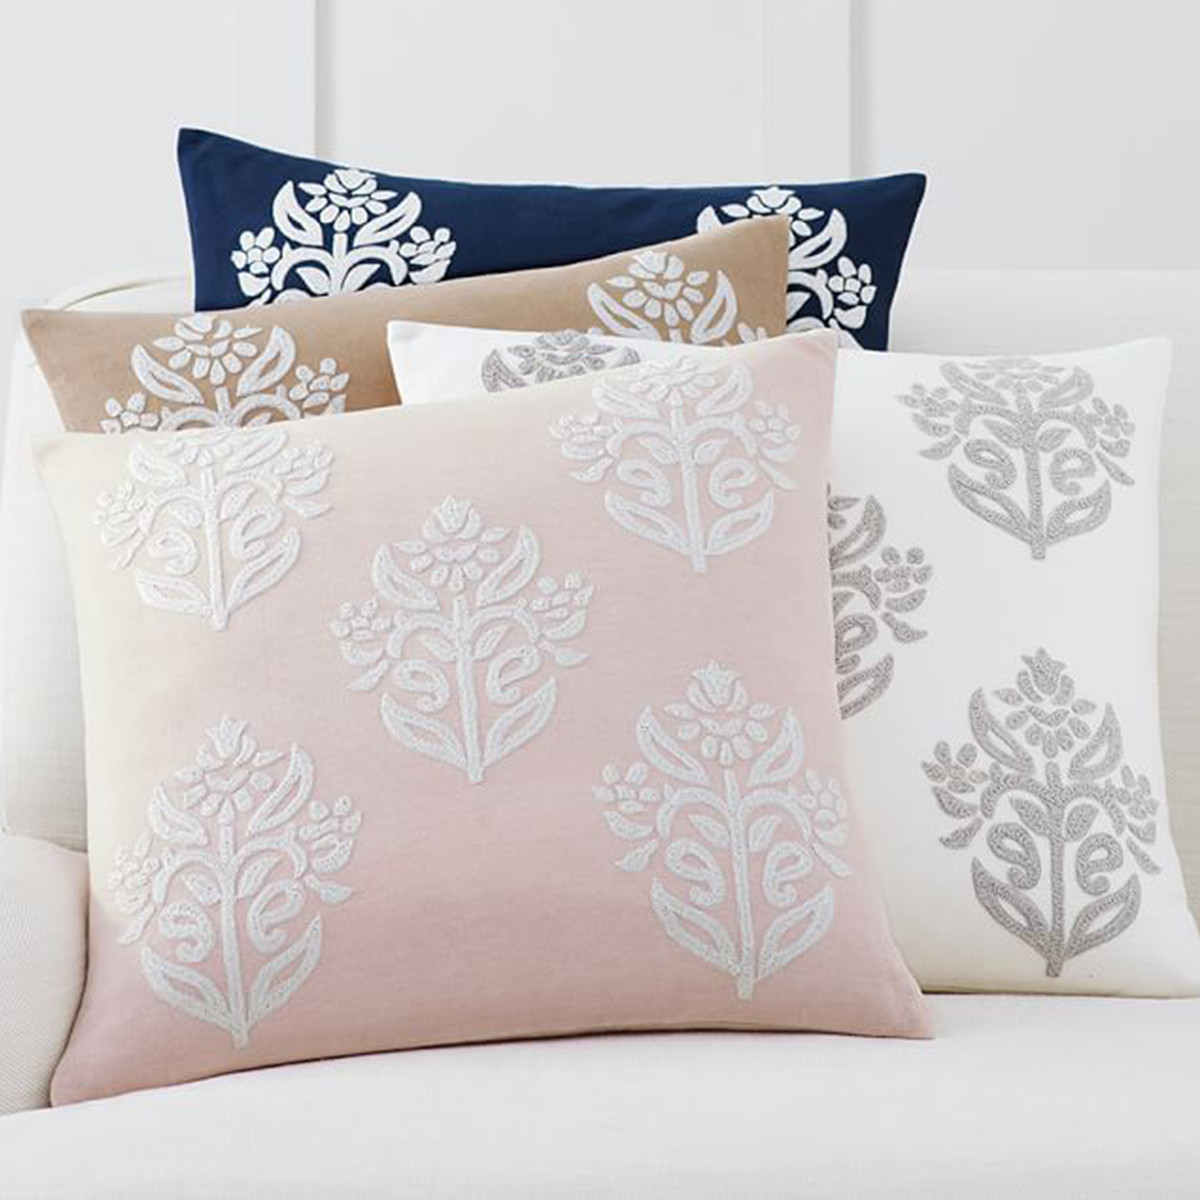 Plush pillows with an embroidered floral print in four colors. photo